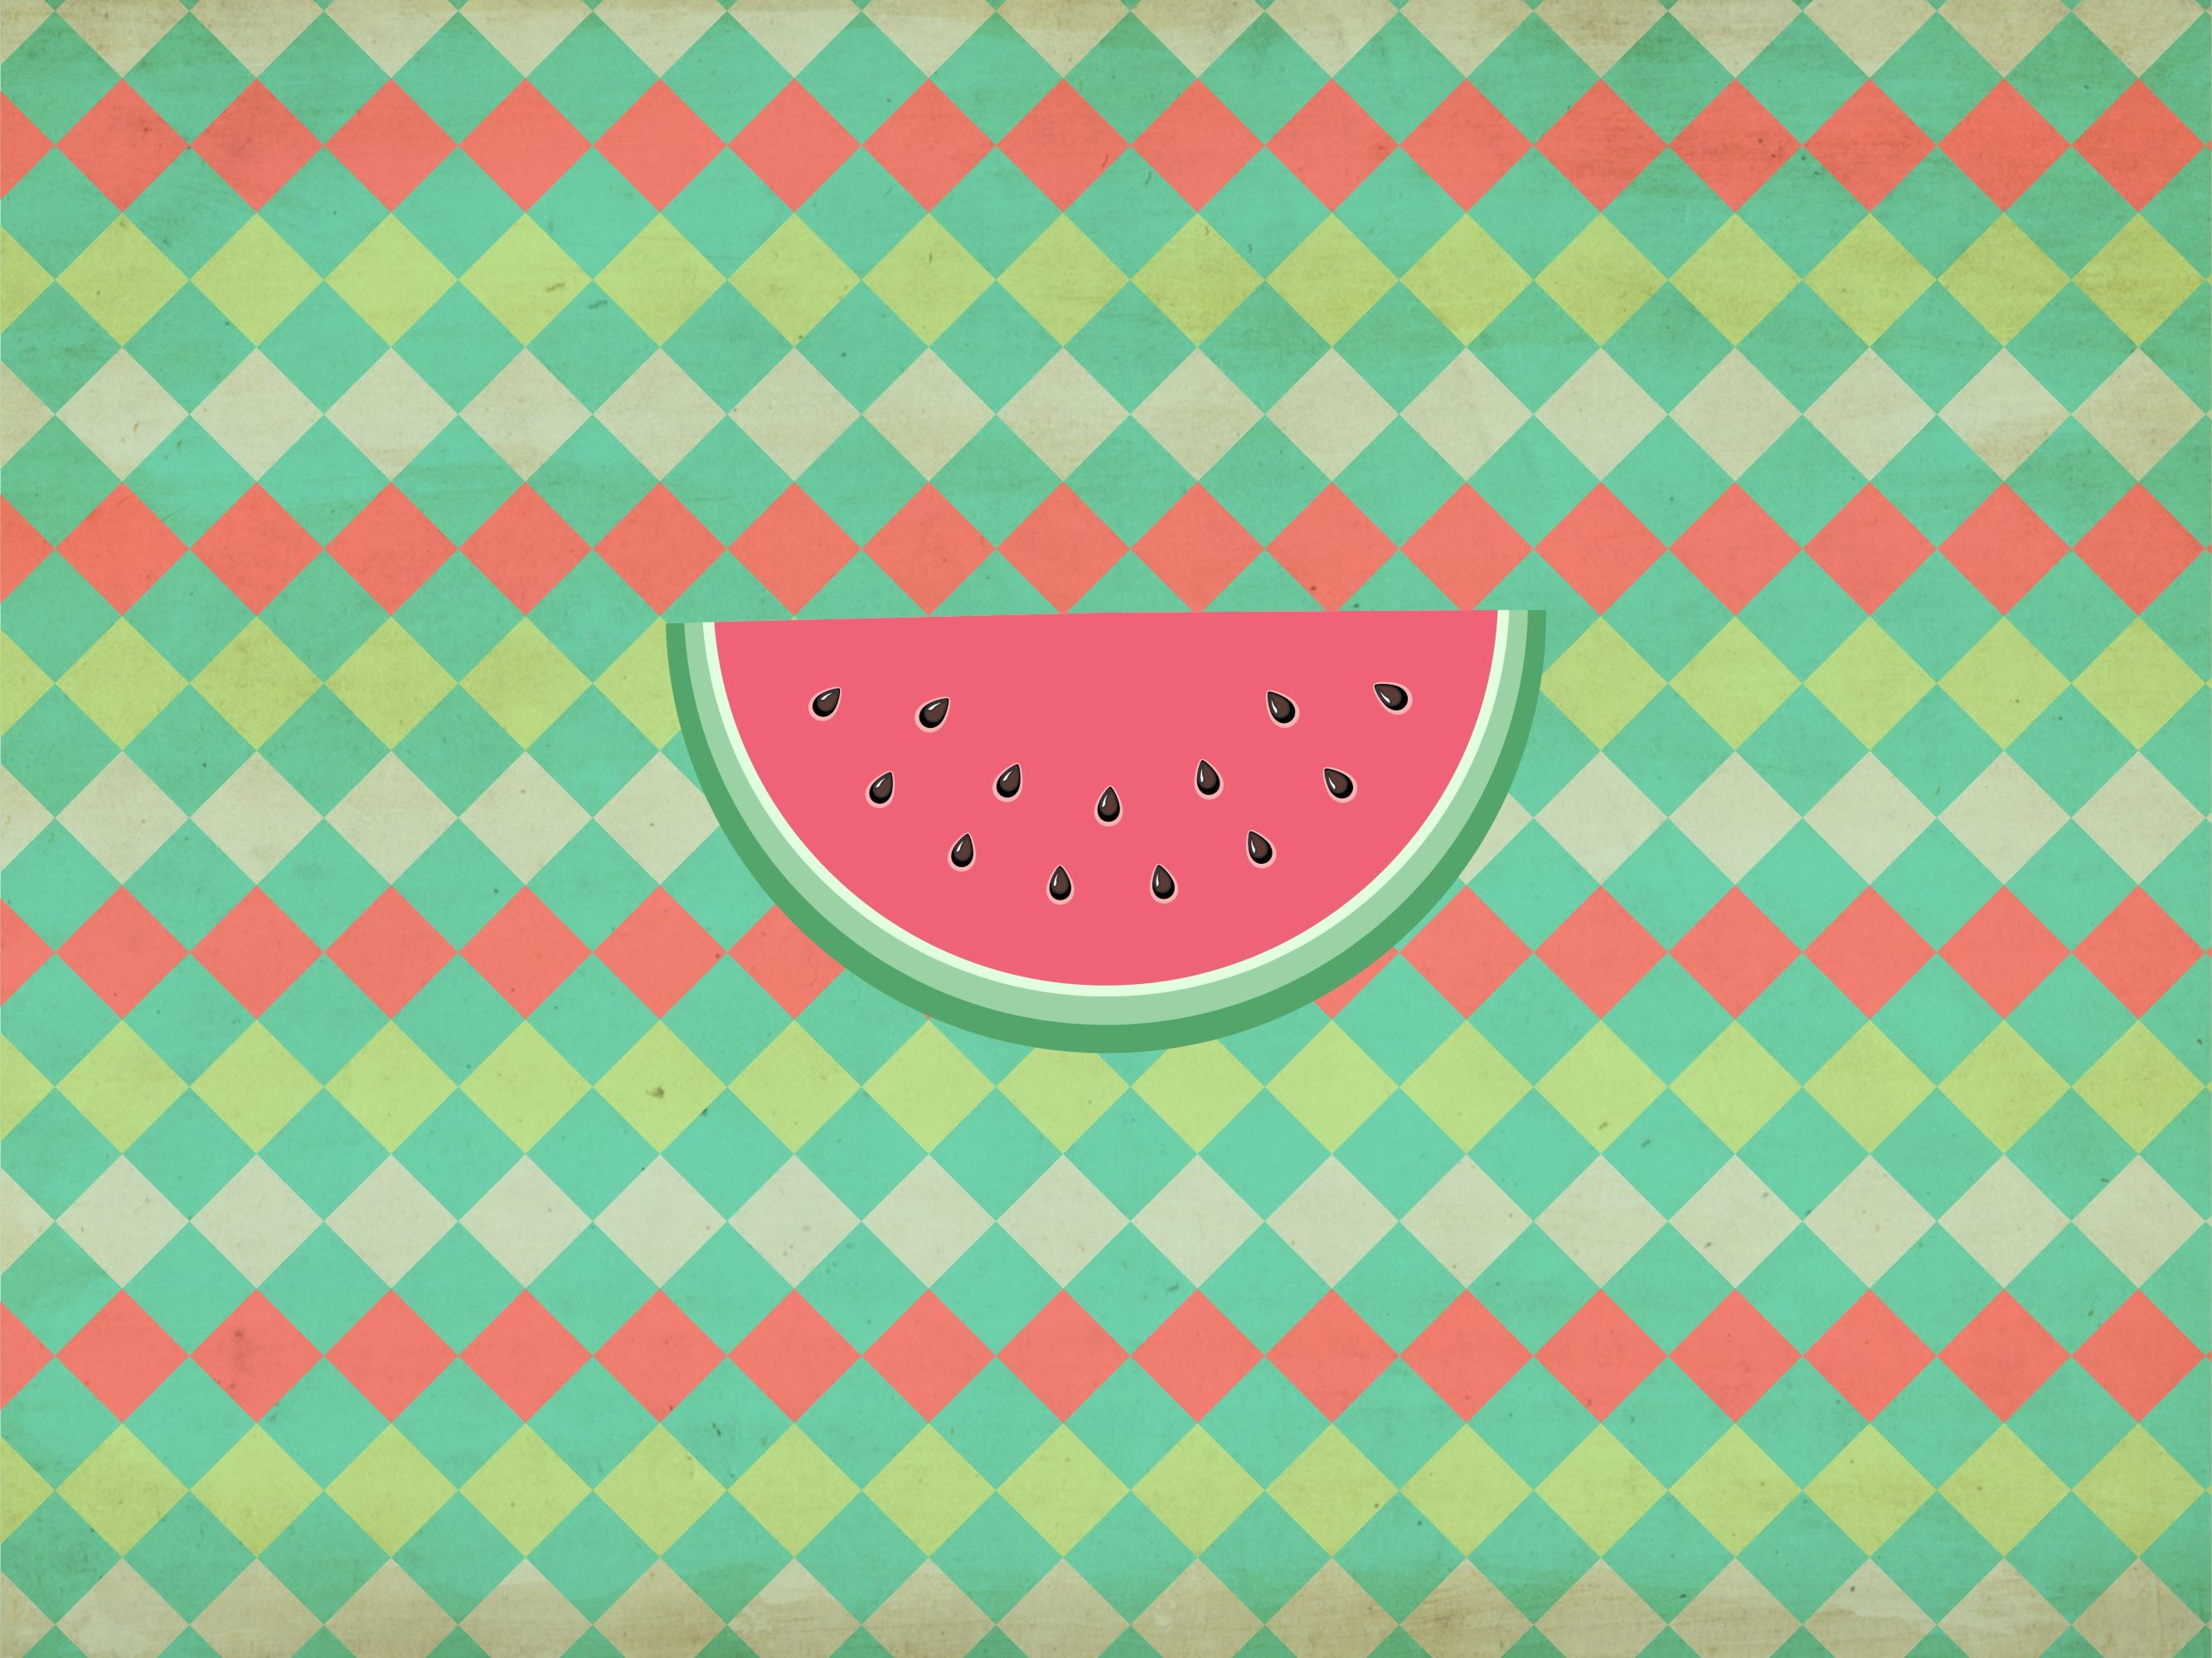 Watermelon wallpaper for Ipads and tablet so sweet and cute.Feel free to  use.